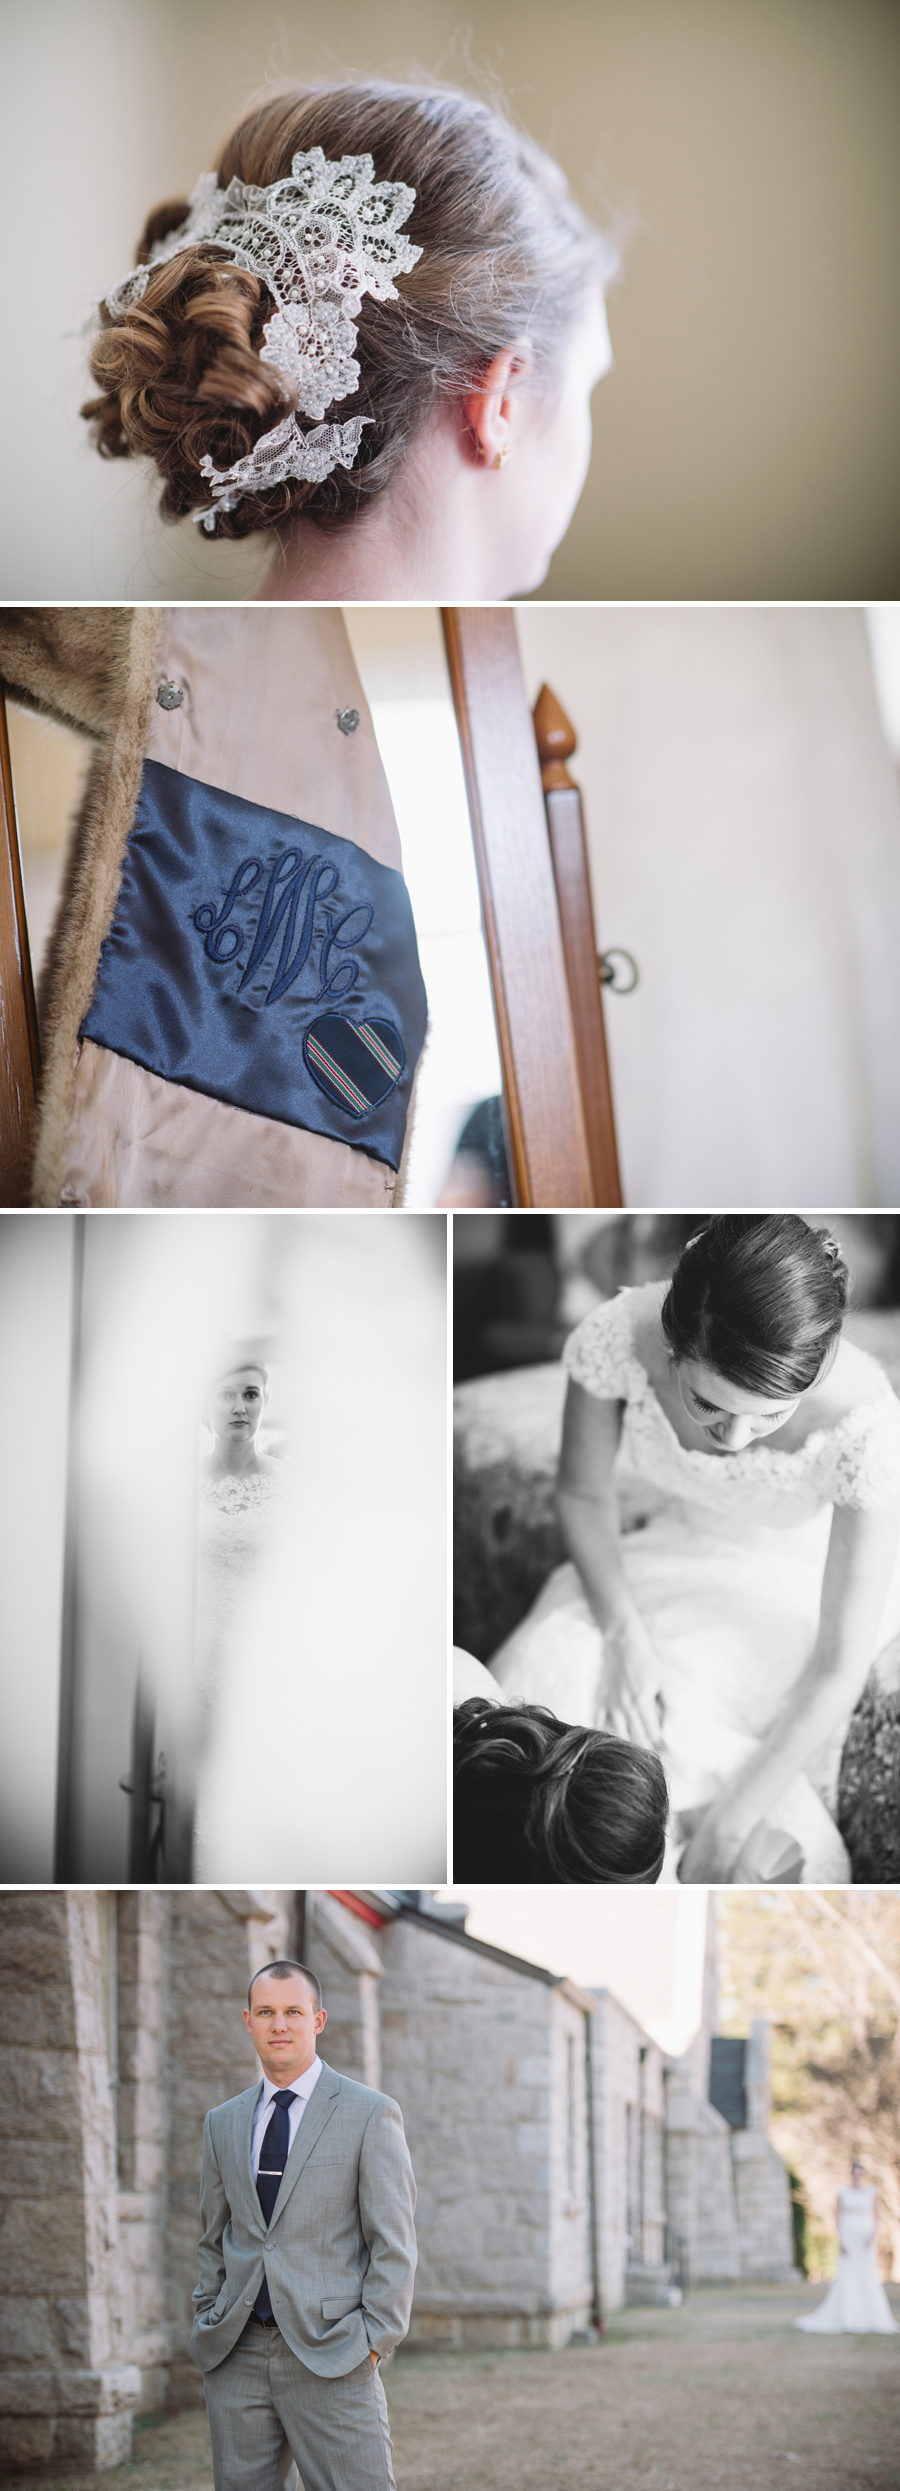 lauren-bryan-wedding-stone -river-columbia